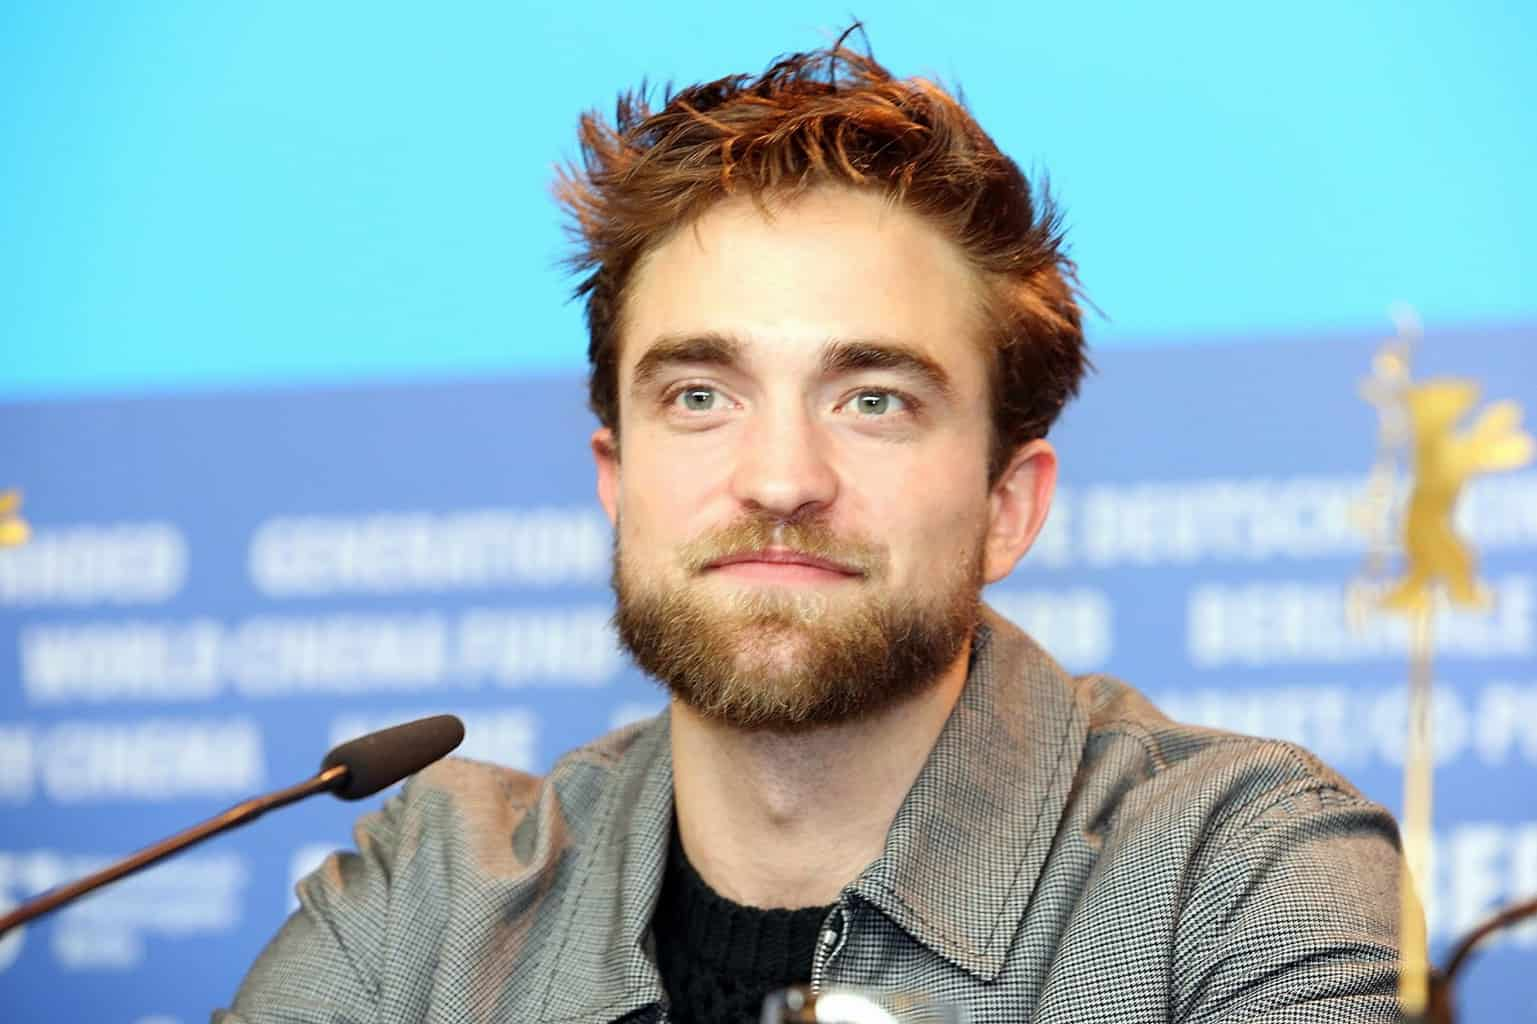 robert-pattinson Top 60 Celebrities With A Beard